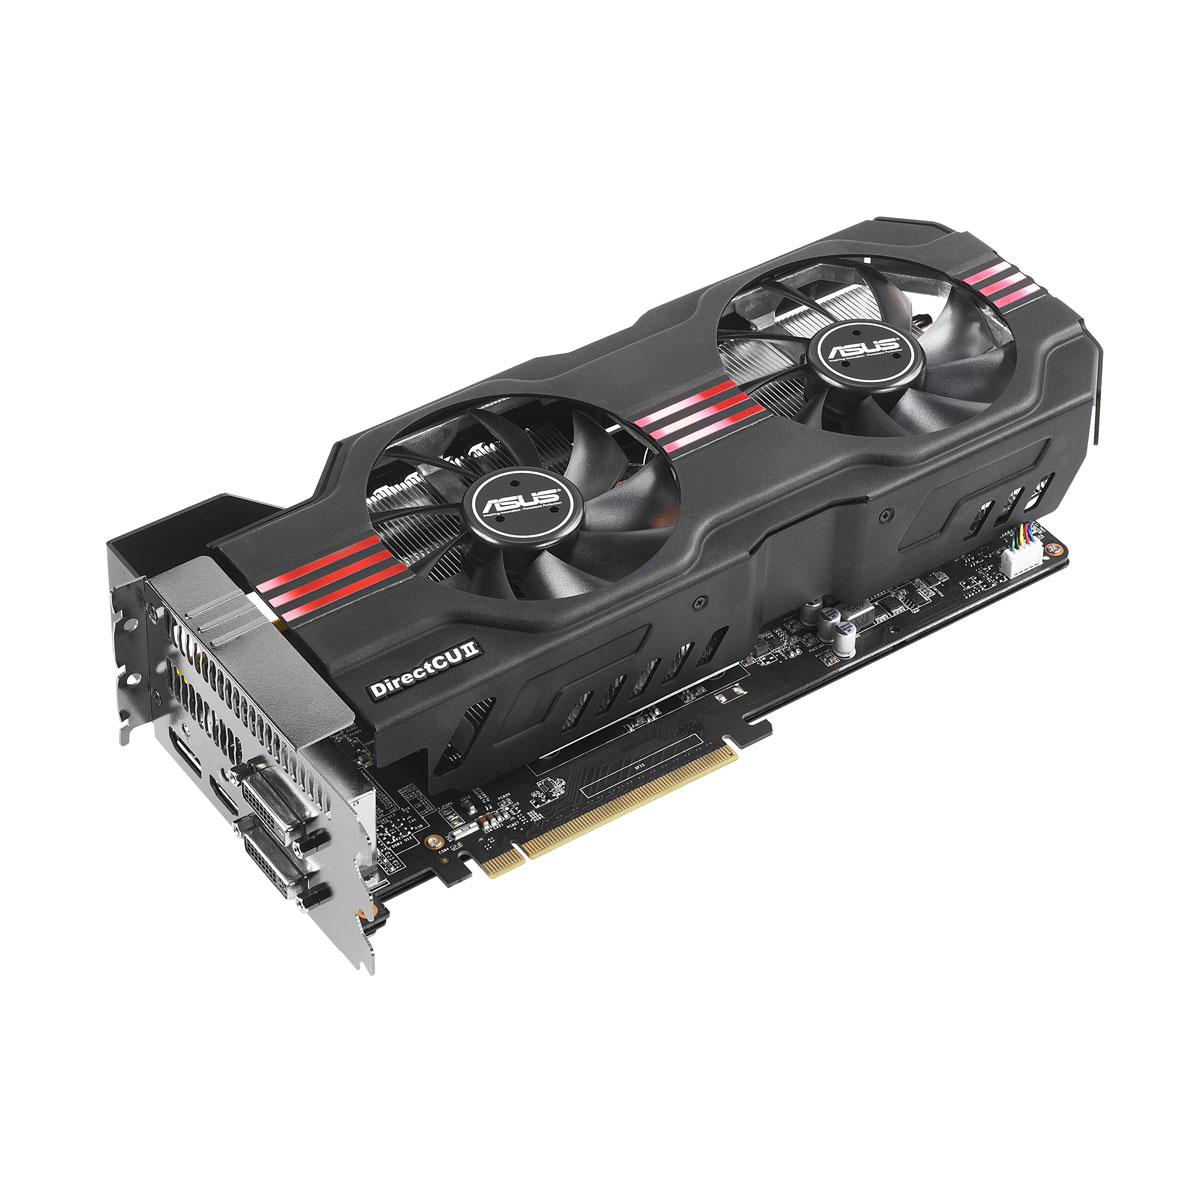 Carte graphique ASUS GTX680-DC2-2GD5 2 Go 2048 Mo Dual DVI/HDMI/DisplayPort - PCI Express (NVIDIA GeForce avec CUDA GTX 680)